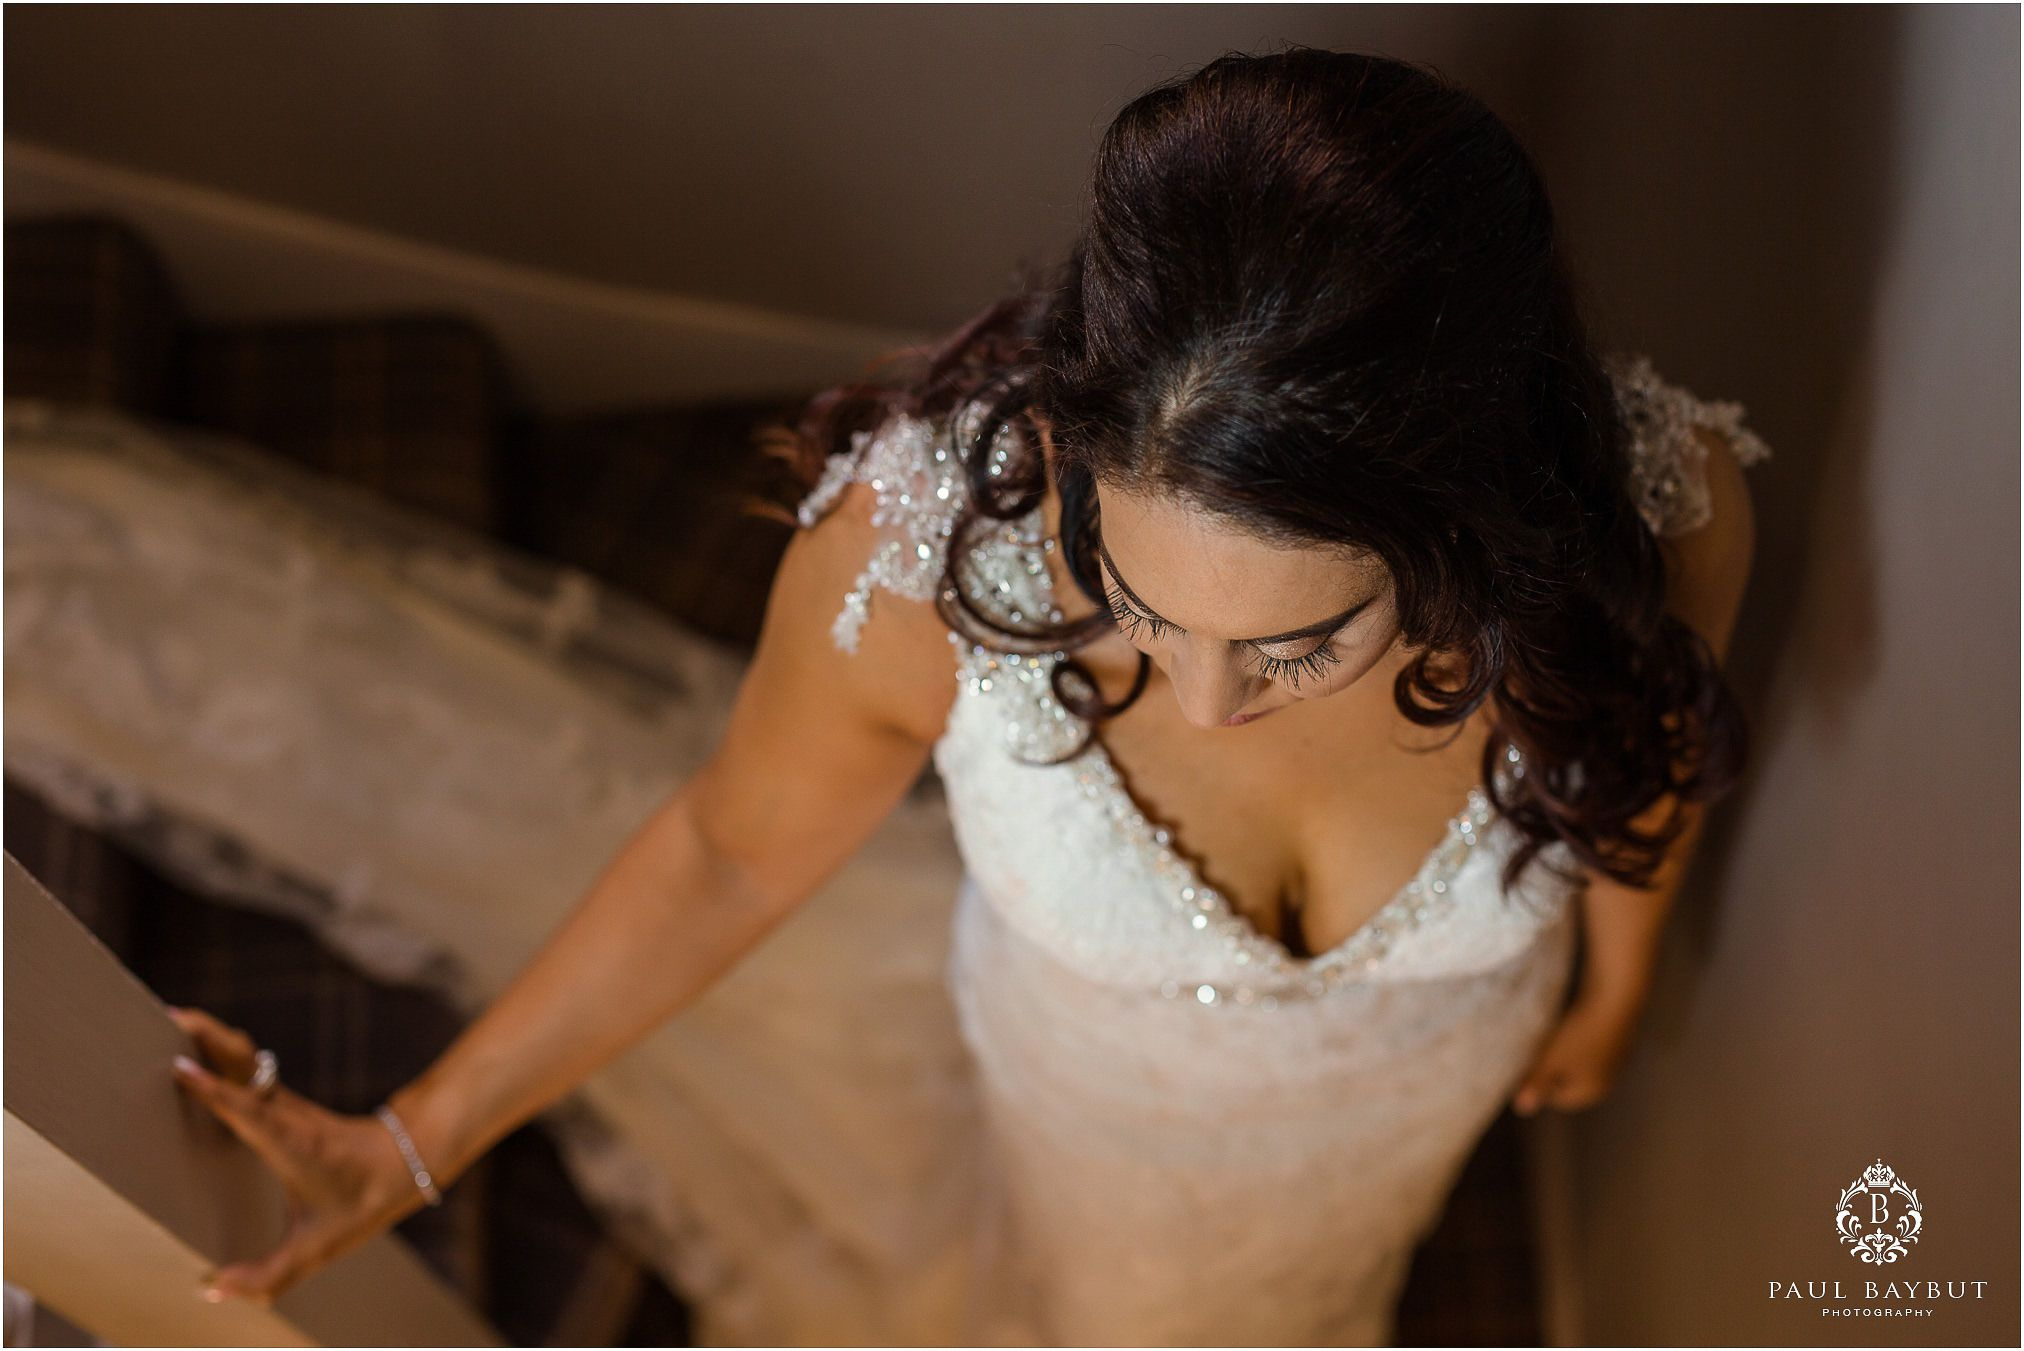 Bride in white dress stands midway on the stairs at Abbey House in Cumbria